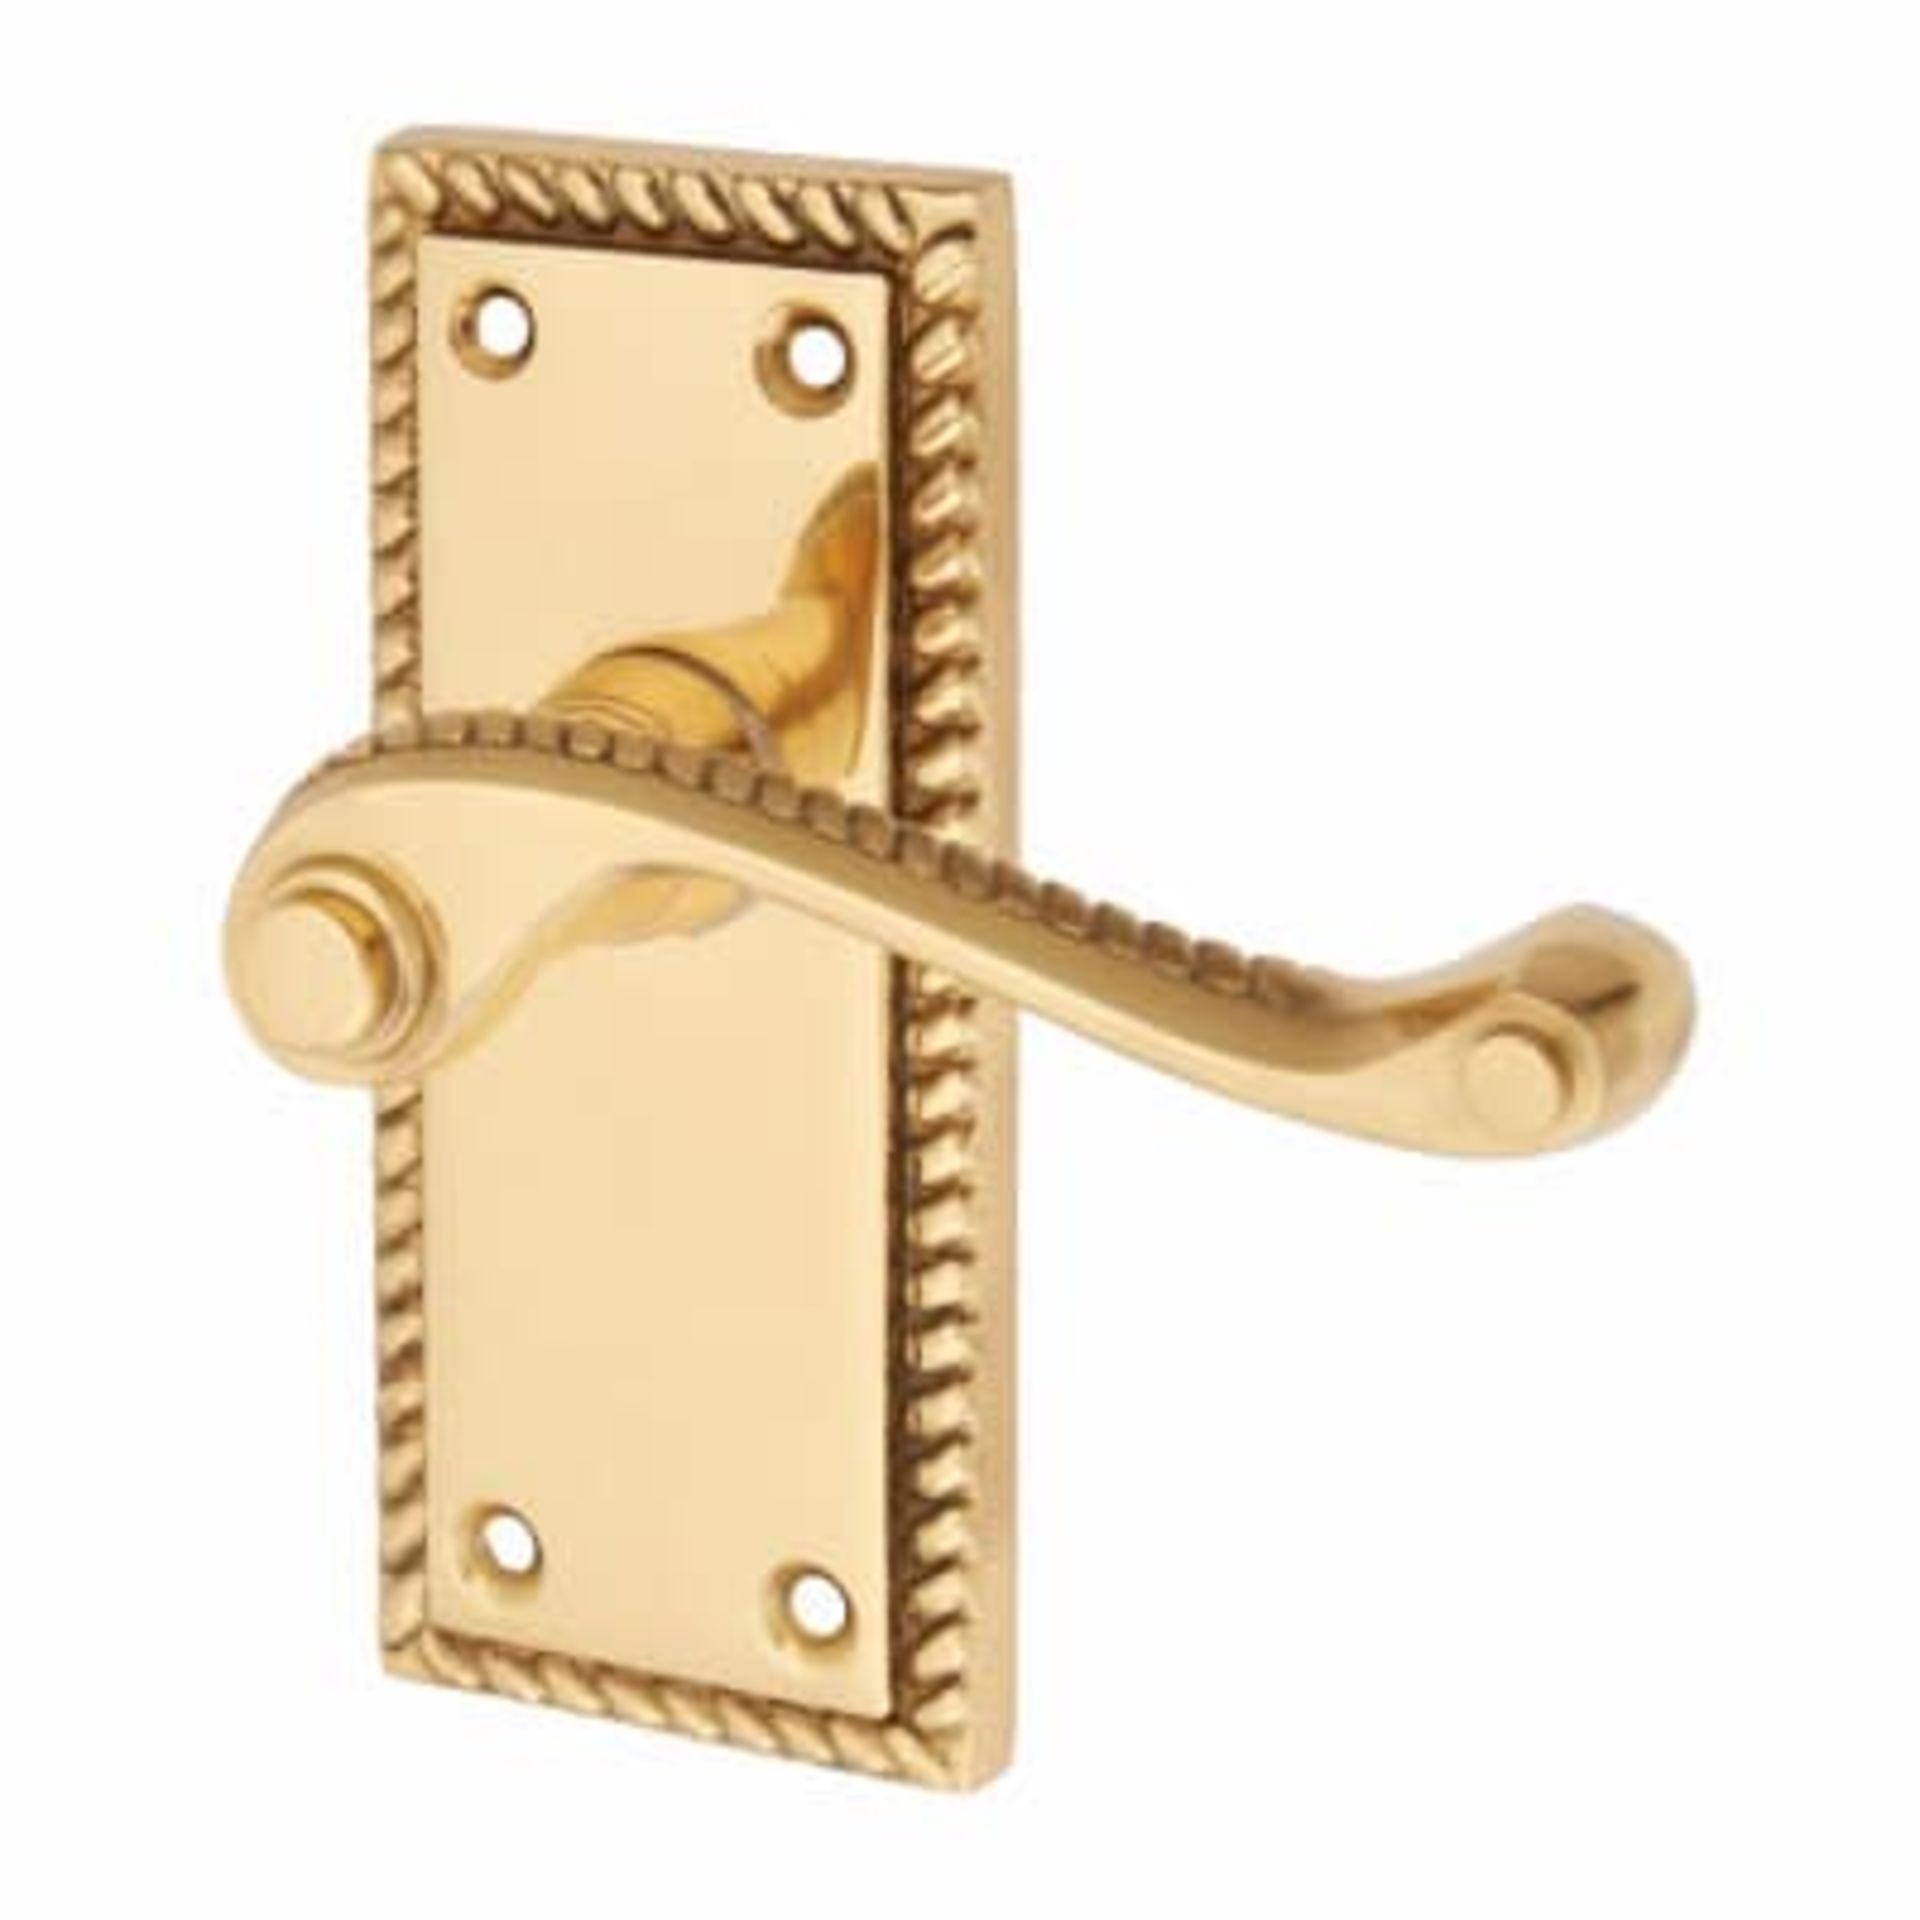 Los 29 - 4 Pairs Georgian Lever Latch Handle Brass